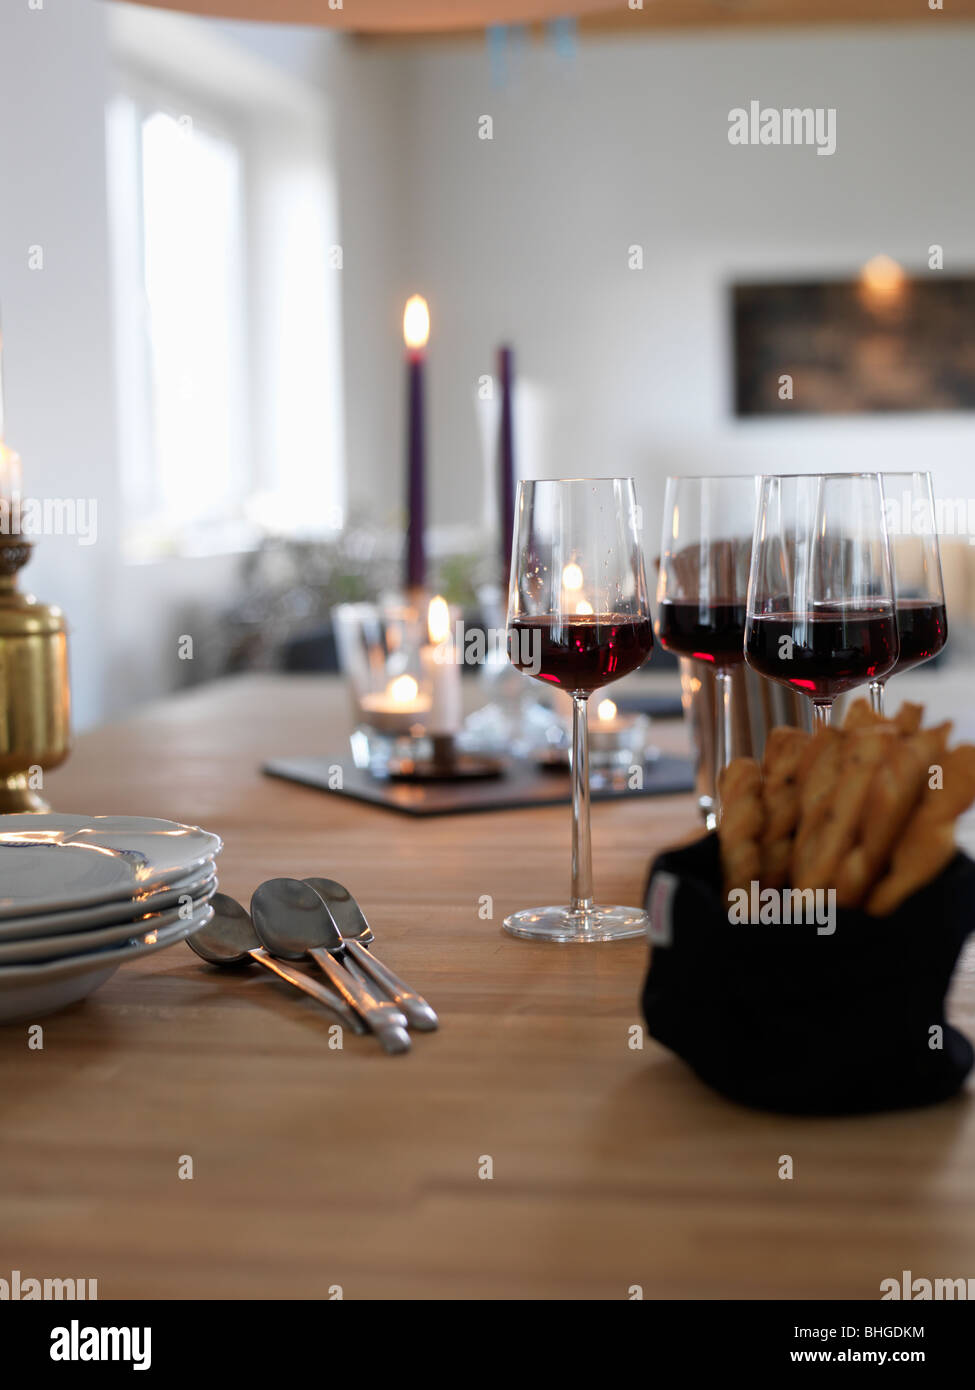 A table ready laid, Sweden. - Stock Image